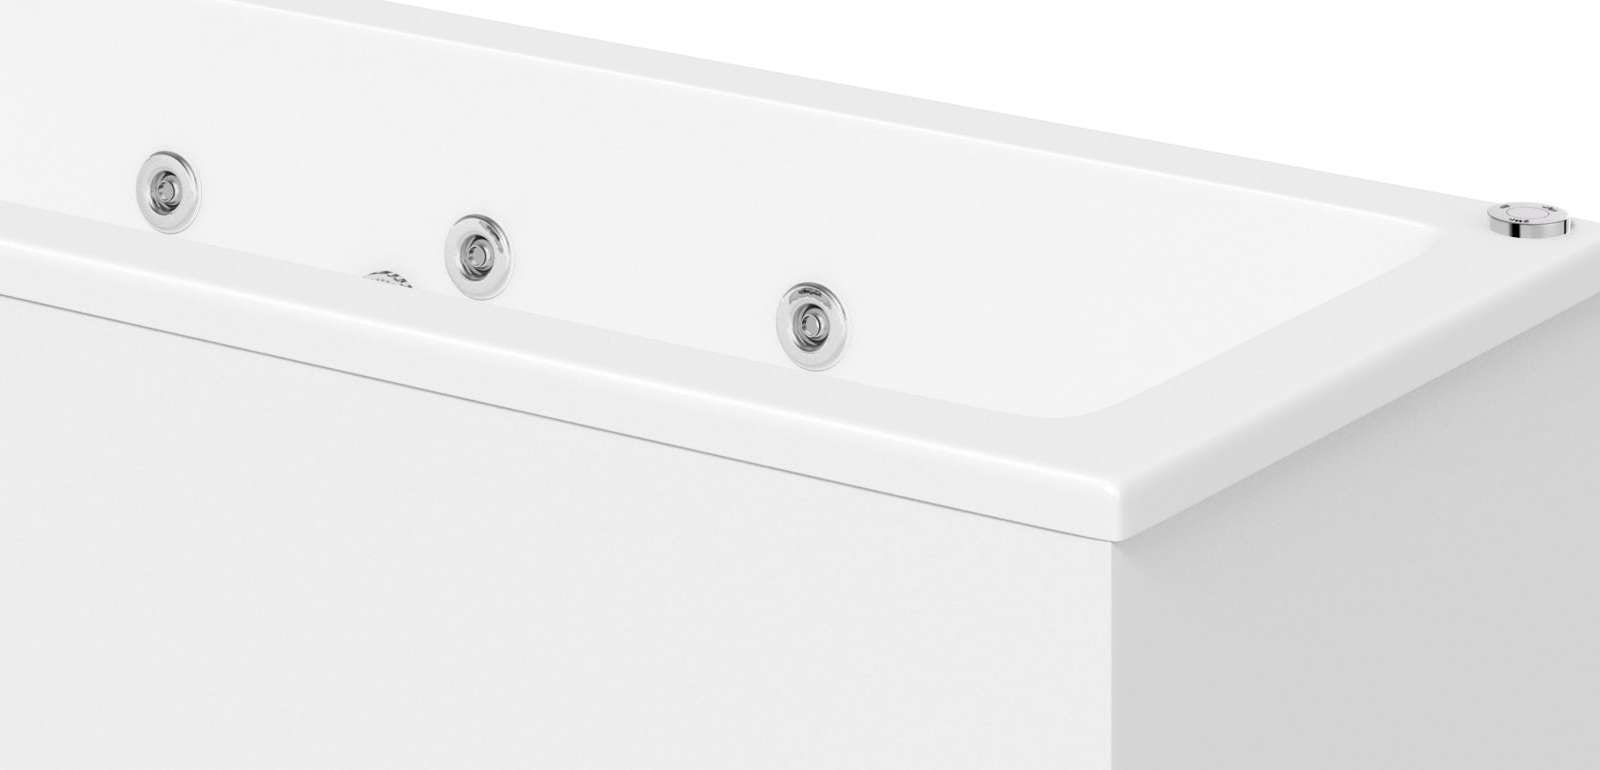 Upgrade to a whirlpool bath